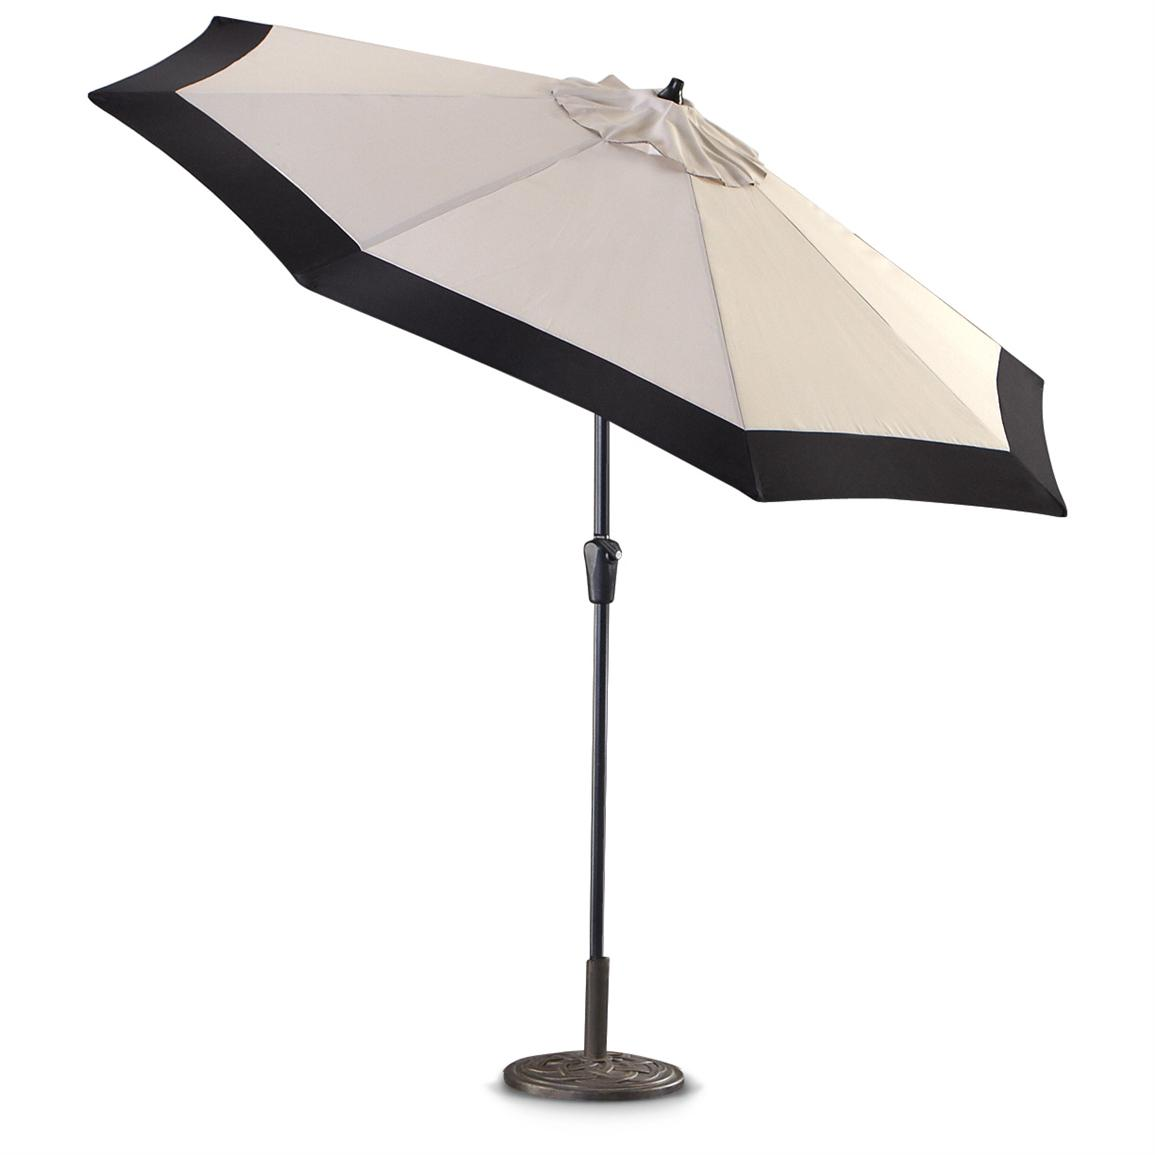 charming white cantilever patio umbrella with black rim and metal stand for patio furniture ideas